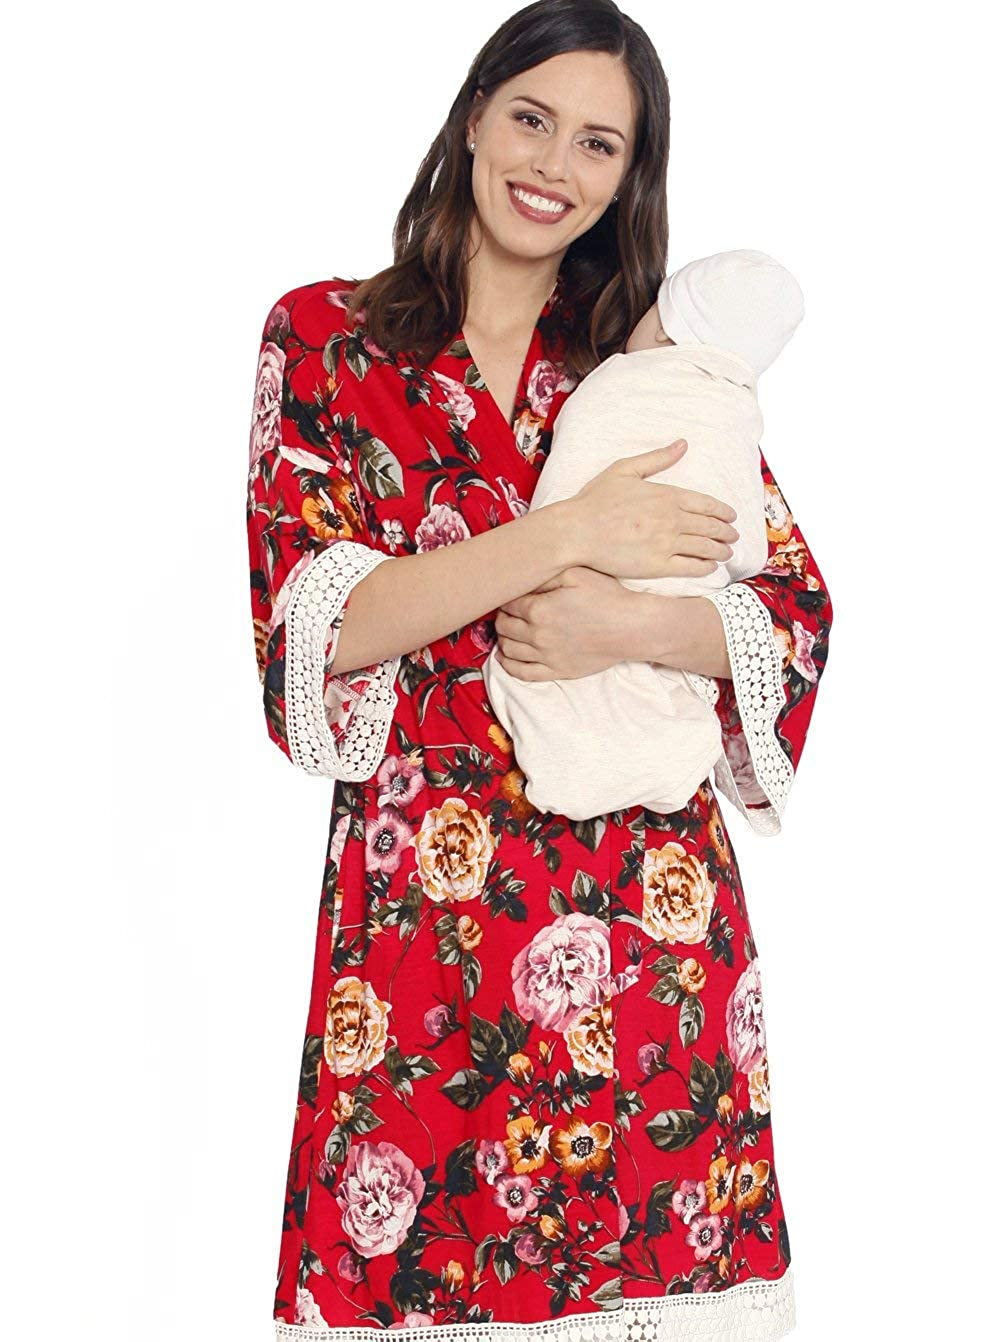 7dbbf931b64cc Angel Maternity 3 in 1 Birth Kit: Hospital Gown + Maternity Gown, Nursing  Dress and Baby Blanket Labor Kit - Red Floral - L at Amazon Women's Clothing  store ...